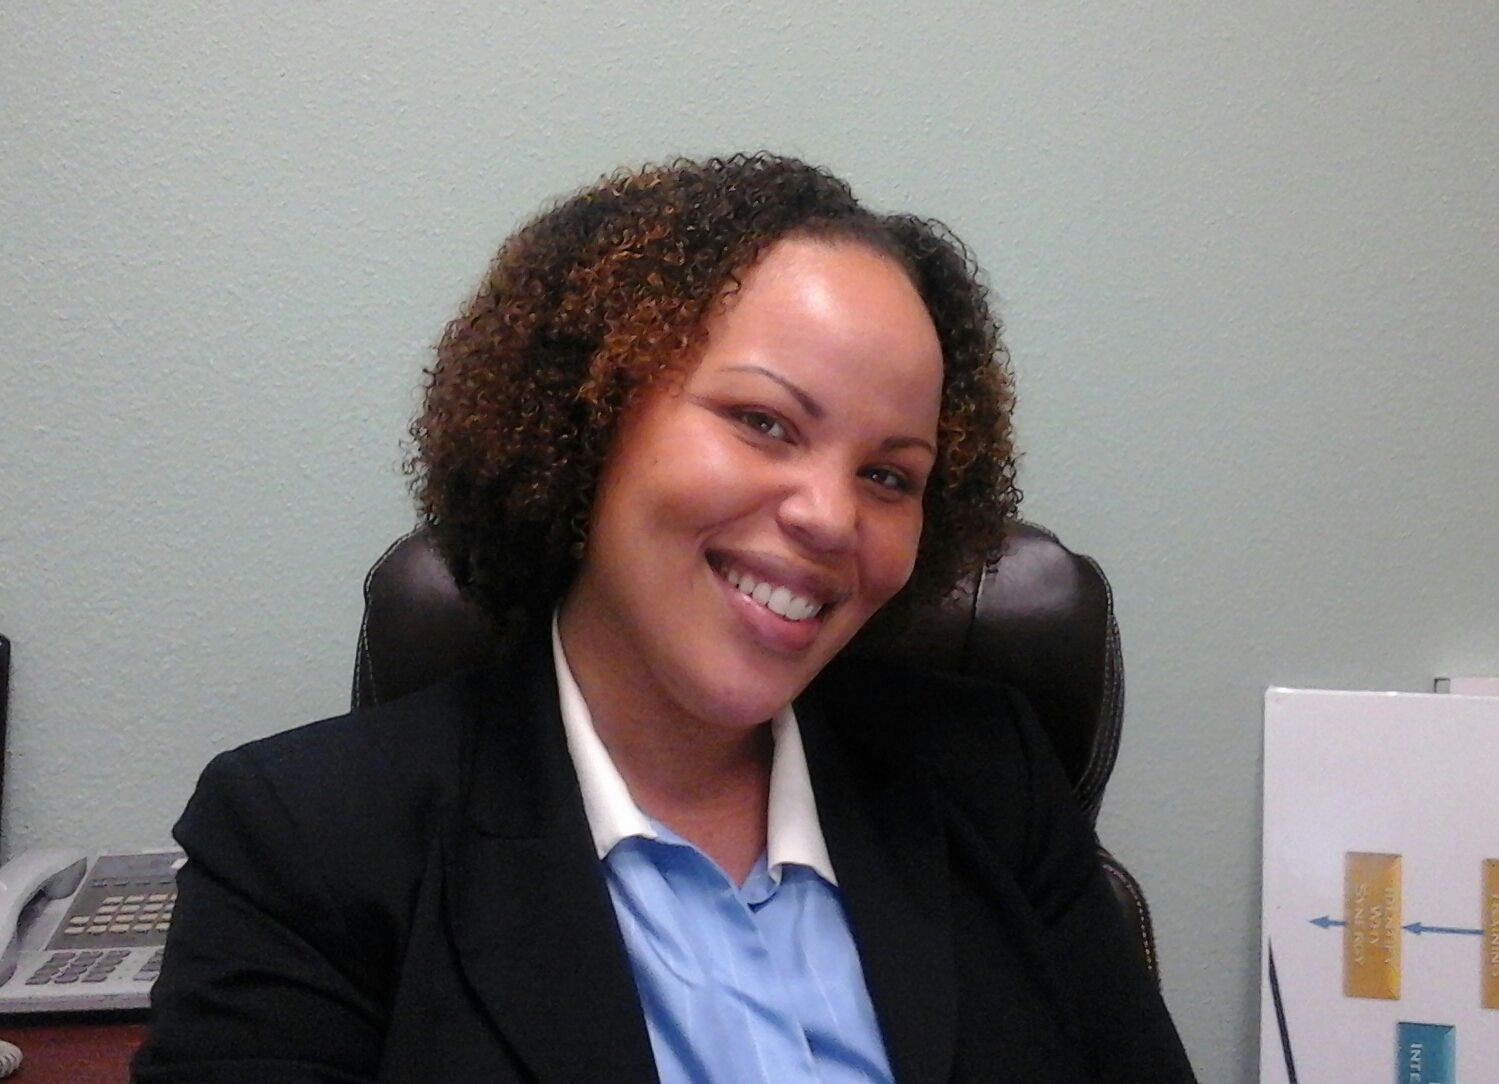 Pictured Is Qiana Hawkins My Tax Accountant In Her Office At The Normandie Business Center She Rocks Her Tight Curl Natural Hair Styles Tight Curls Her Hair